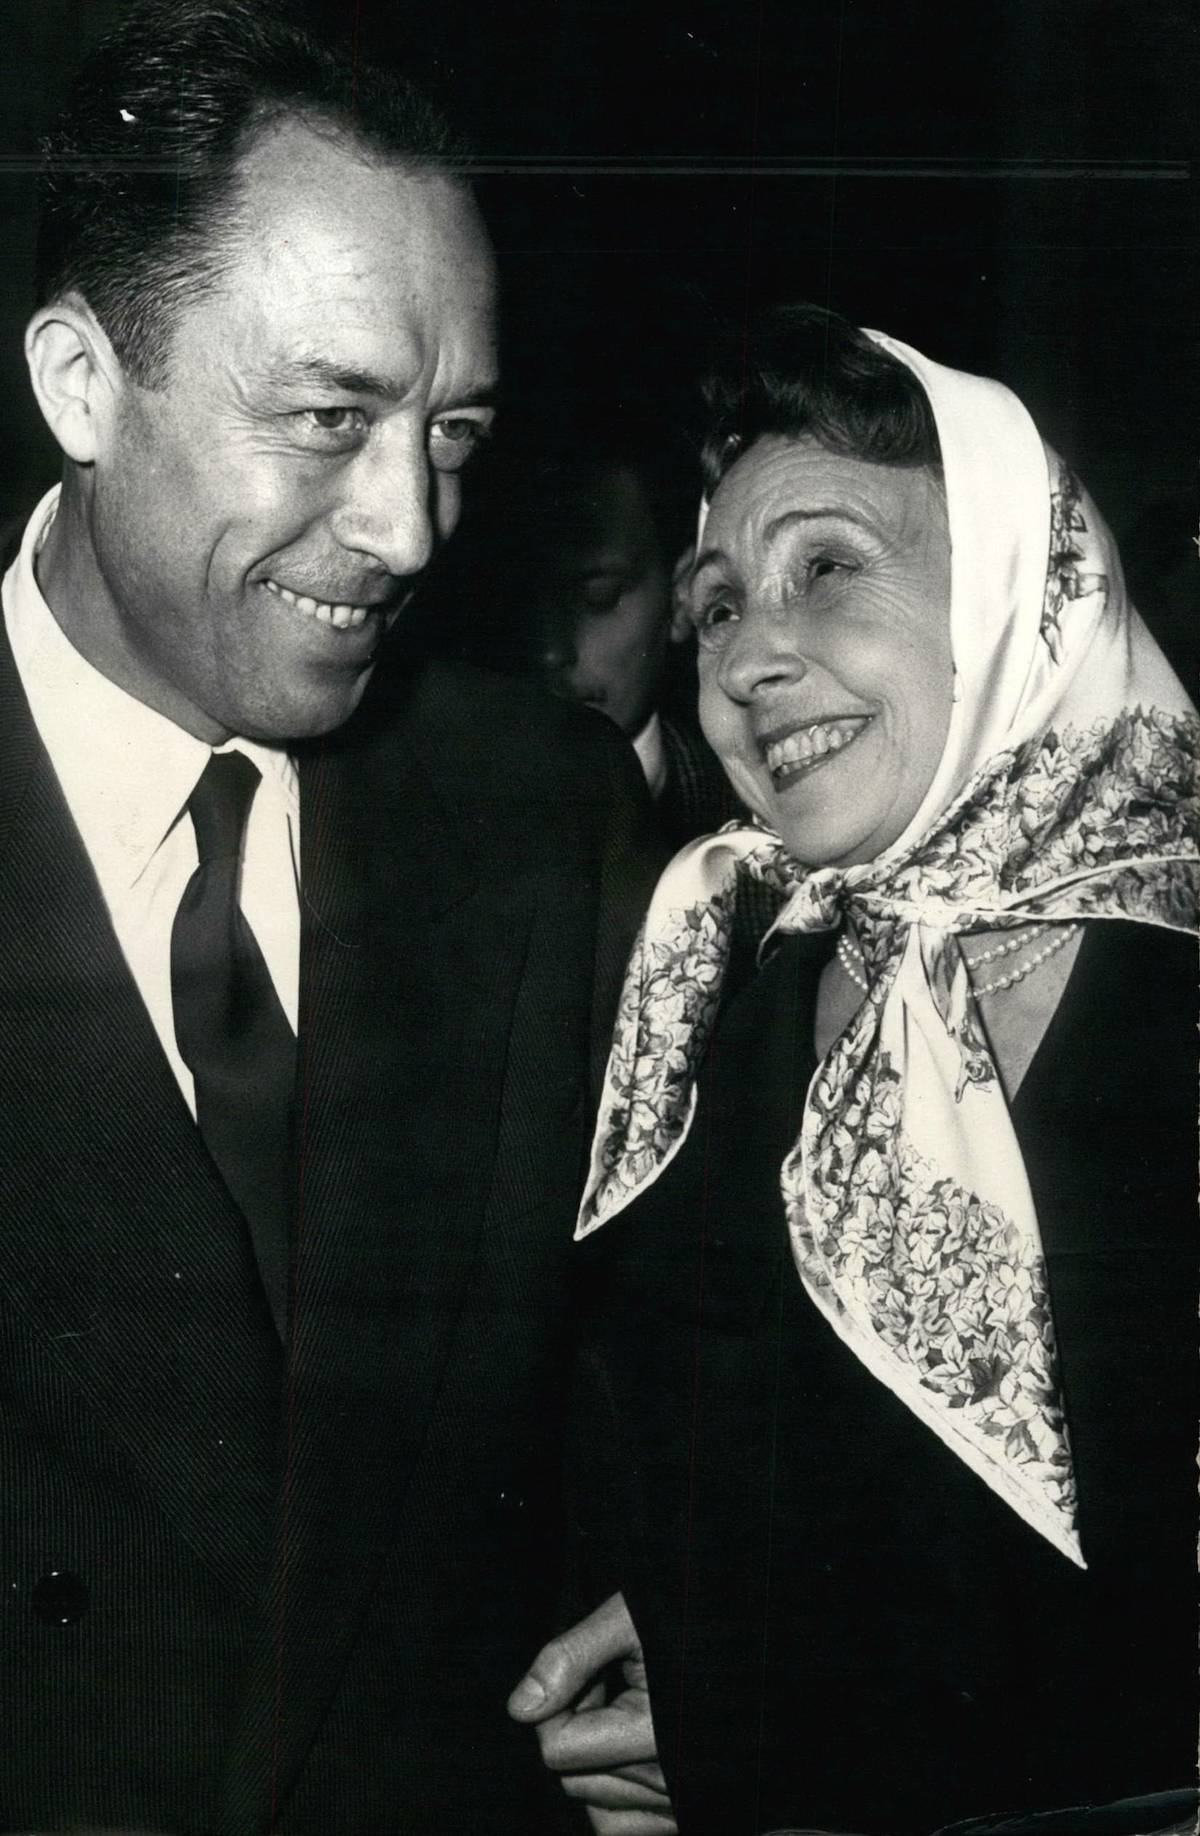 Albert Camus awarded Nobel Prize for literature 1957 44-year old French author Alobert Camus was awarded the Nobel Prize for literature by the Swedish Academy today. Albert Camus, photographed with Madeleine Renaud, famous French actress during the reception held at Gallimard The Paris publisher, this afternoon. 1957